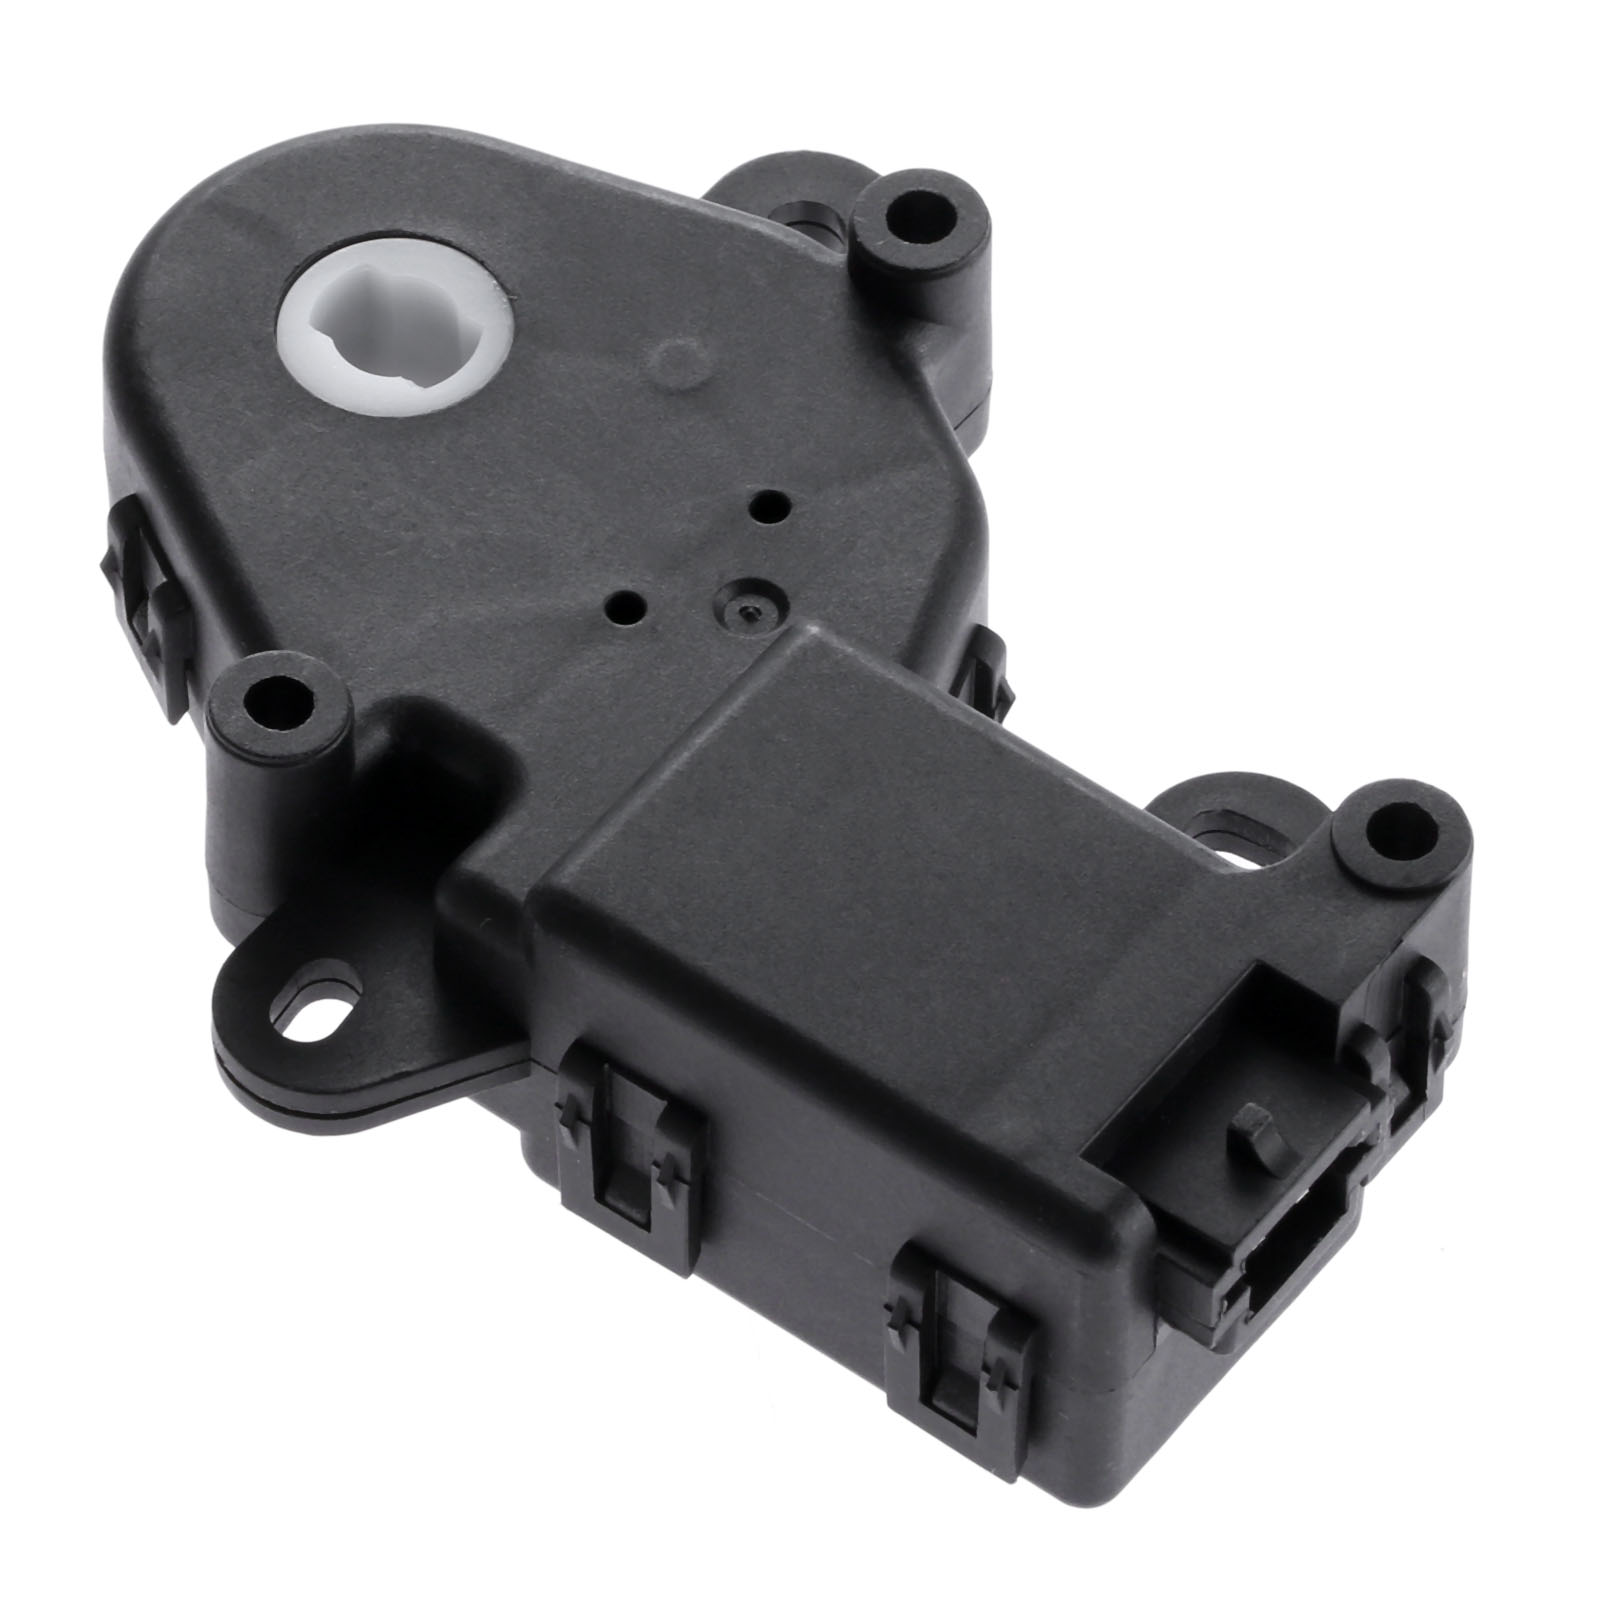 Image 2 - Yetaha 88970277 New HVAC Heater A/C Blend Door Actuator For Chevrolet Colorado Pontiac Isuzu GMC Canyon i 280 604 132 2003 2012-in Air-conditioning Installation from Automobiles & Motorcycles